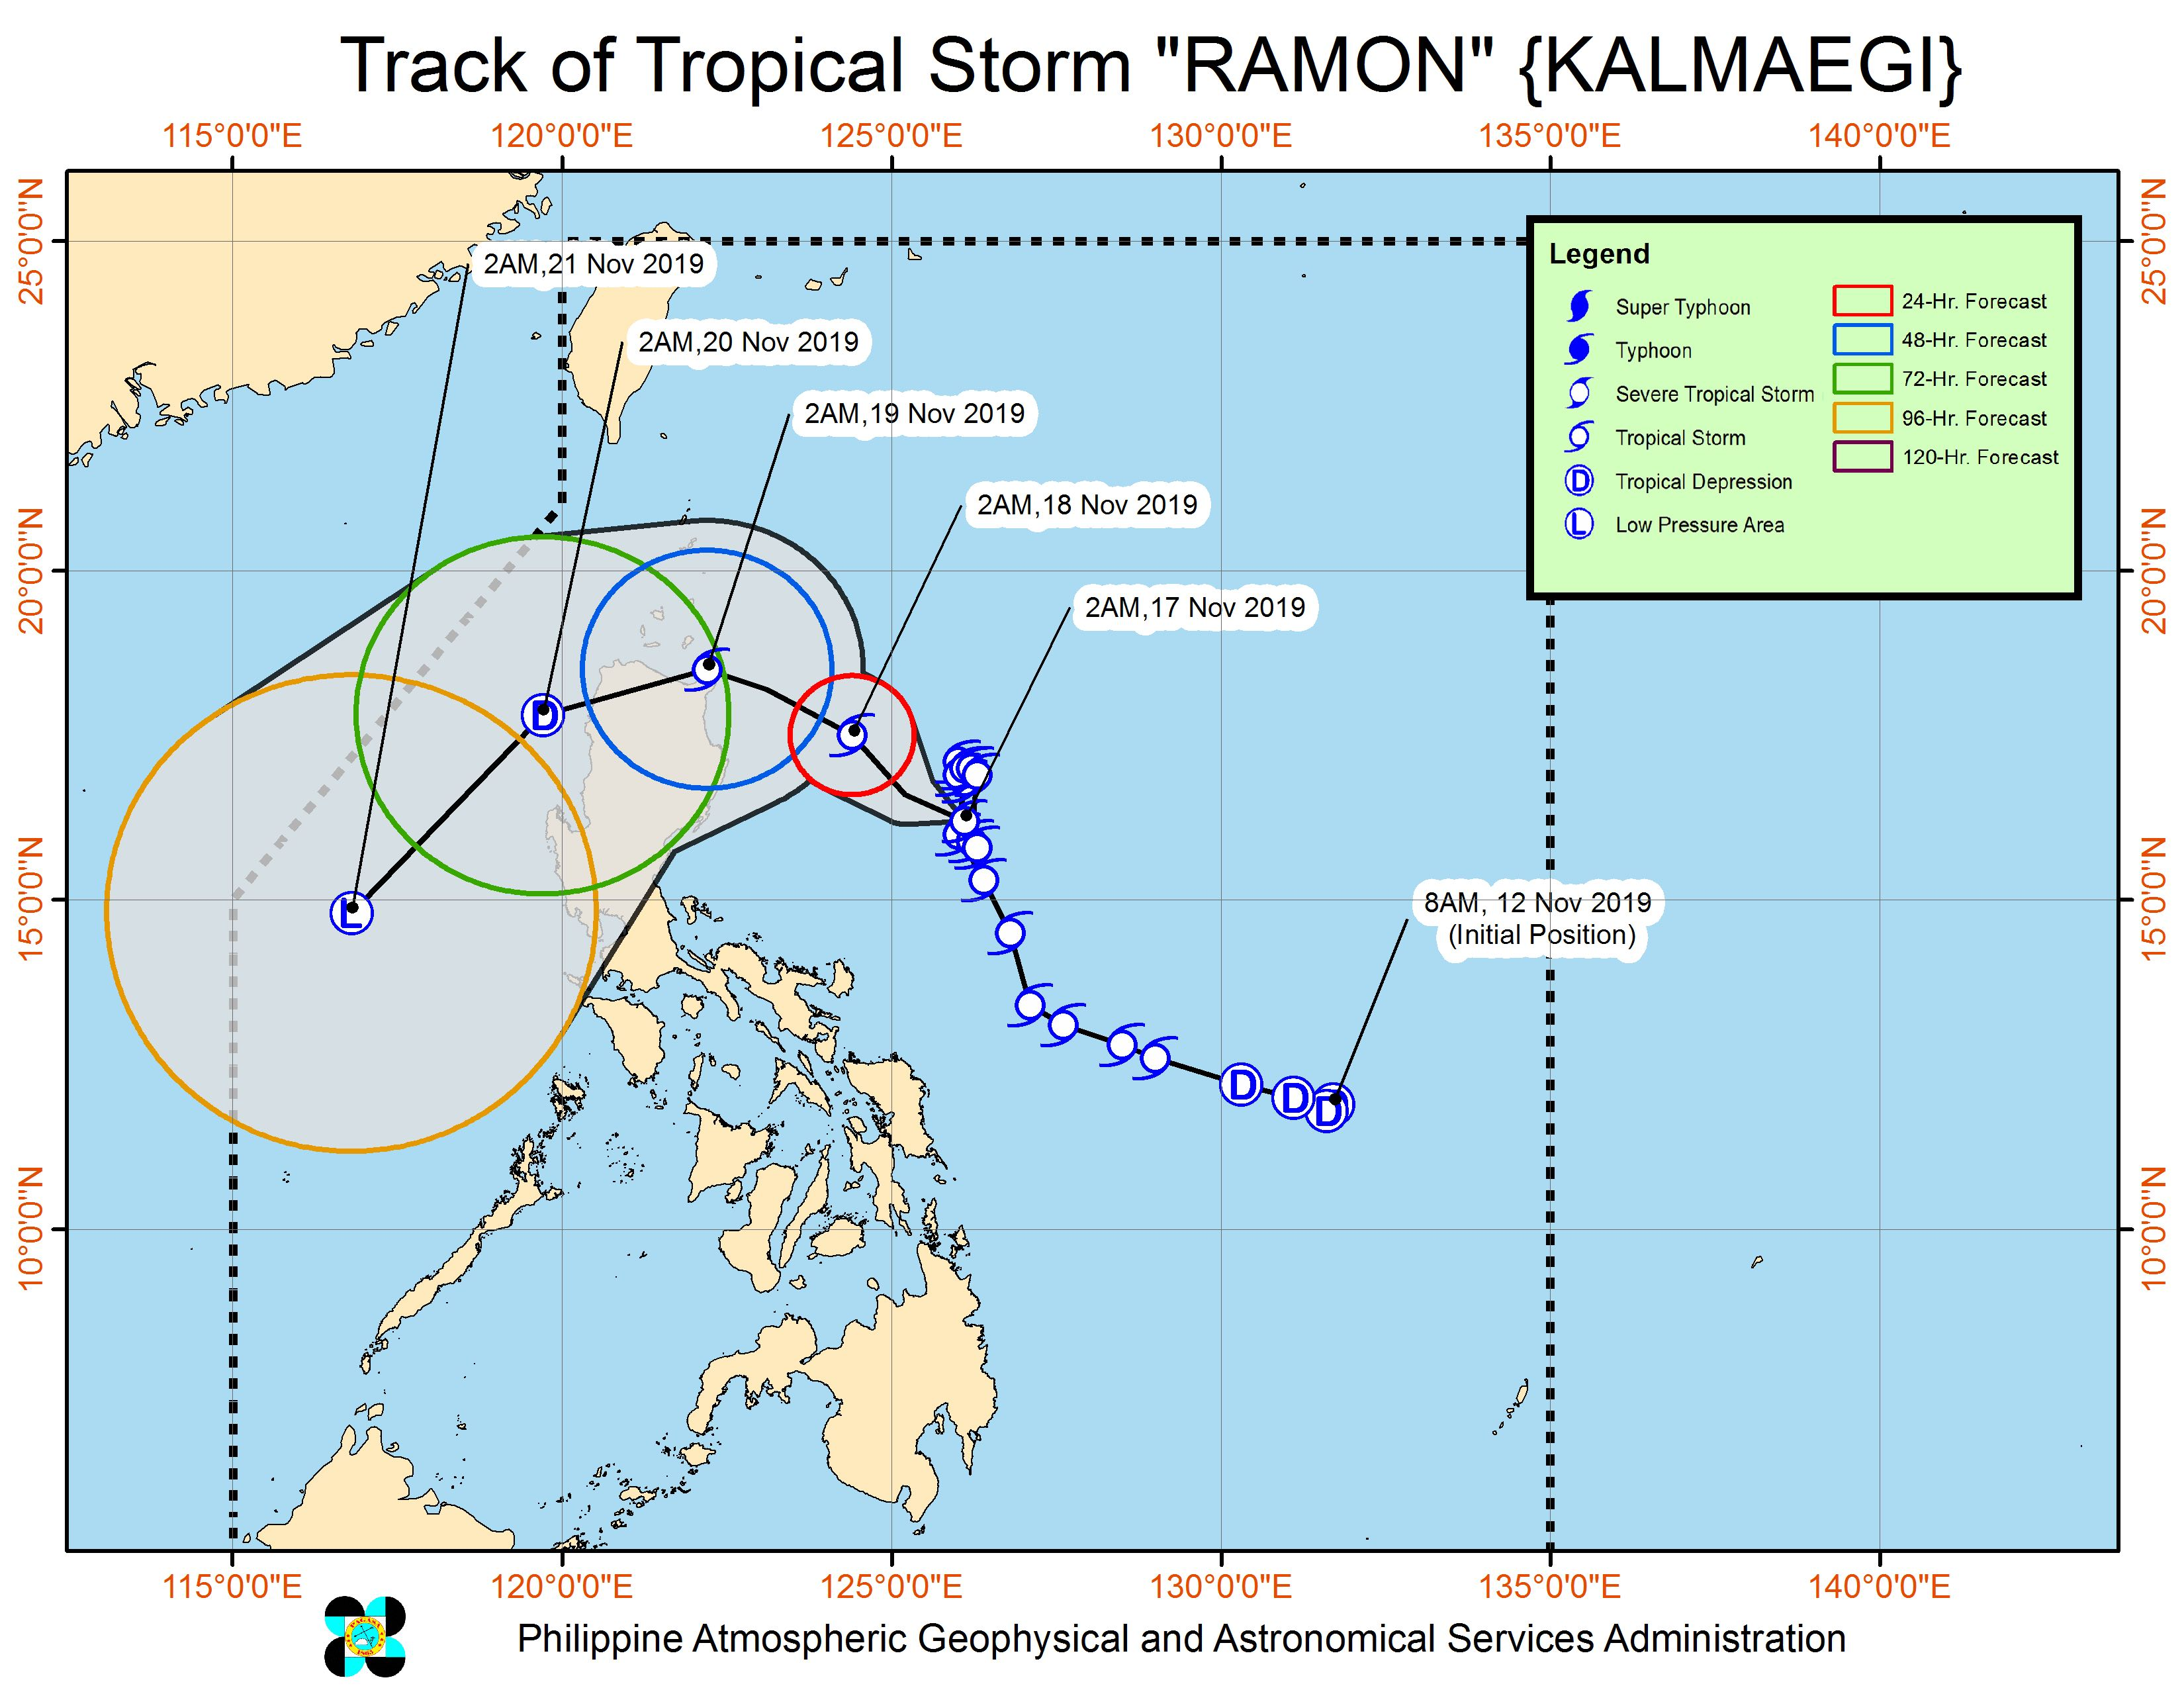 Forecast track of Tropical Storm Ramon (Kalmaegi) as of November 17, 2019, 5 am. Image from PAGASA